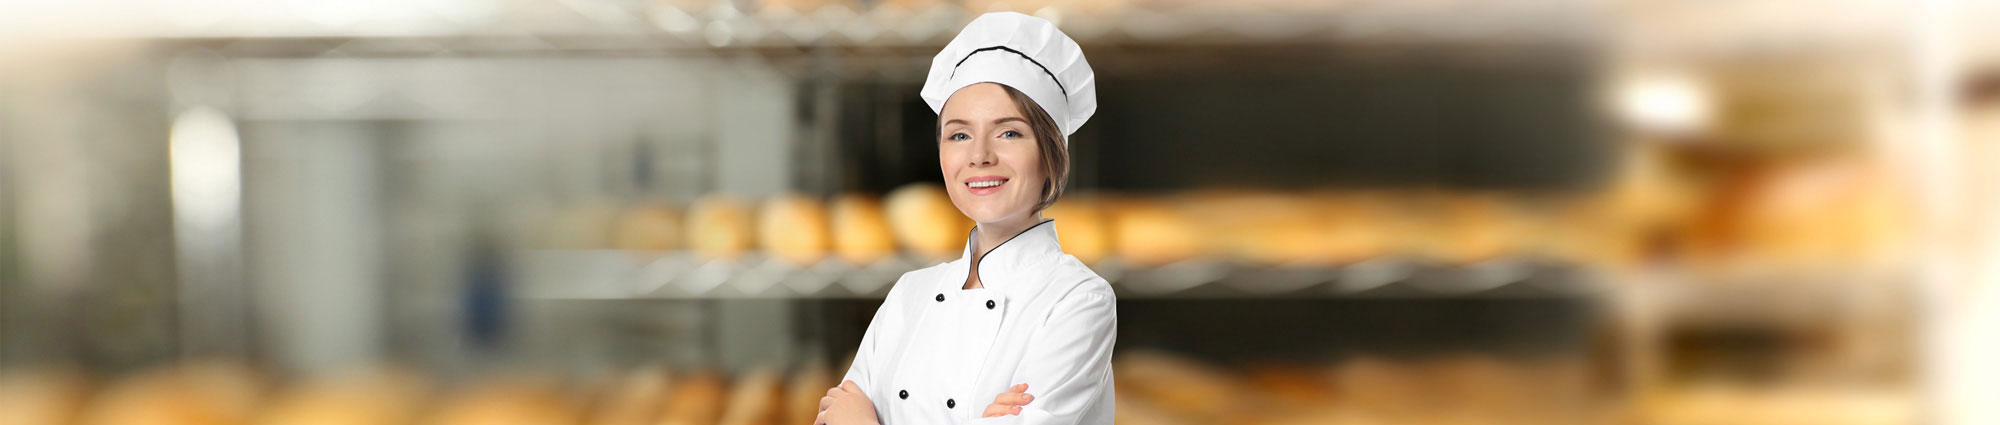 Female staff member in bakery